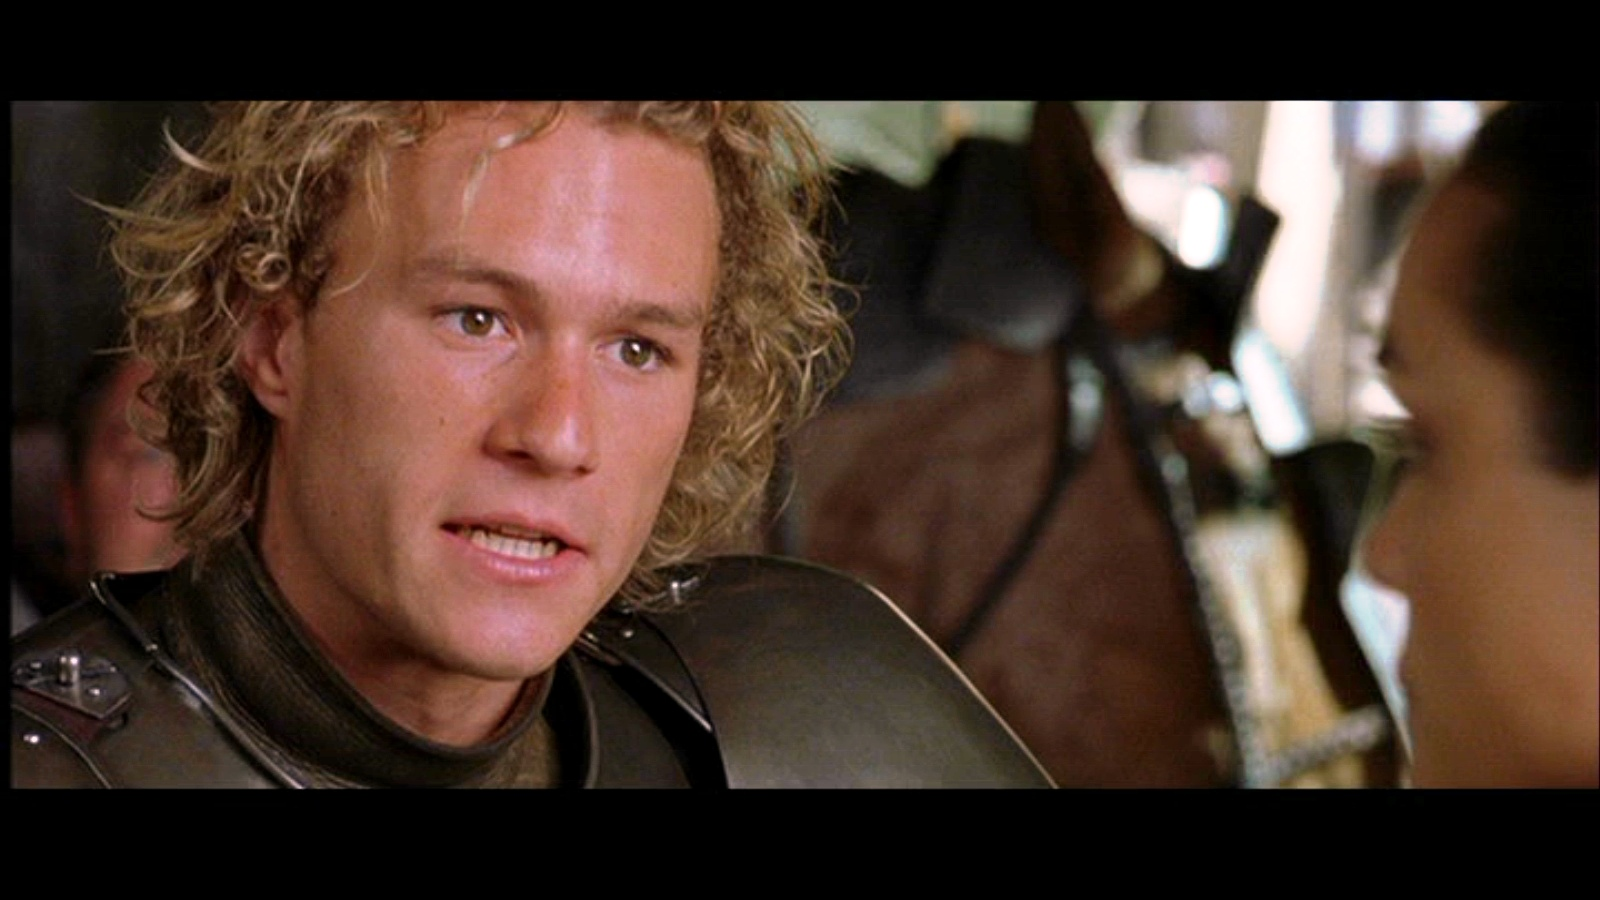 knights tale Includes reviews, audio clips, track listings, pictures, and other notes about the a knight's tale soundtrack by carter burwell.